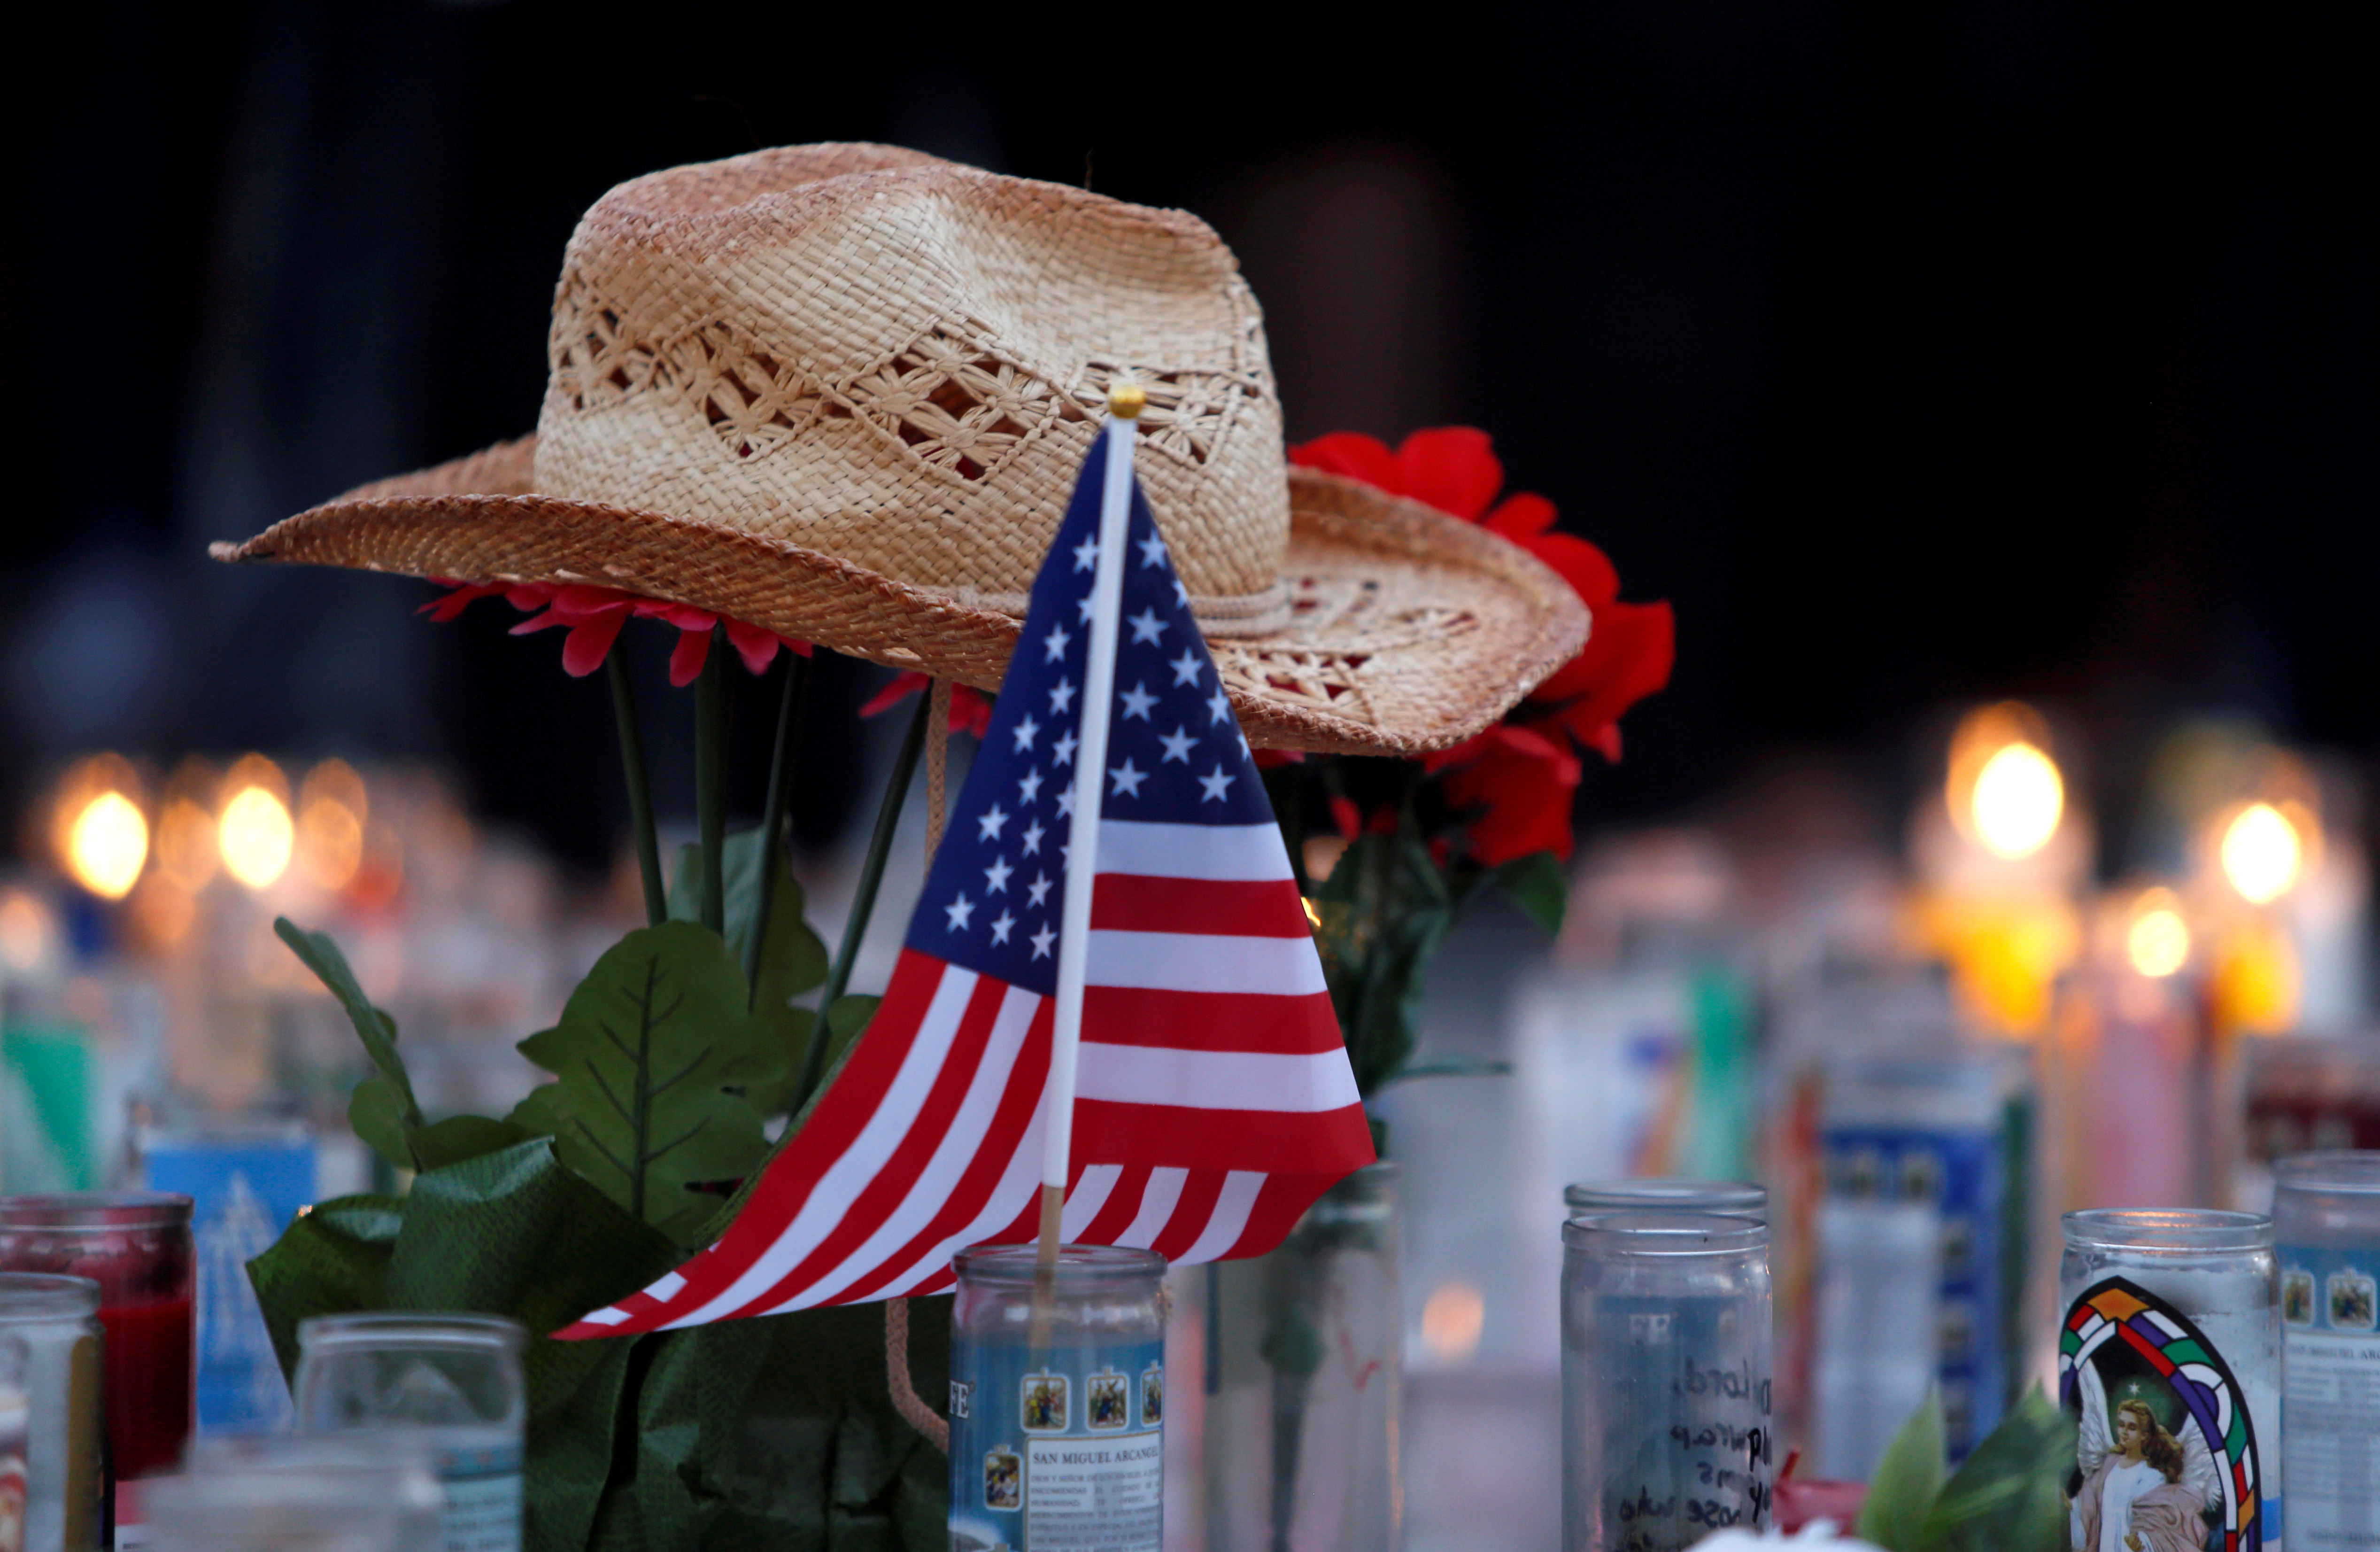 A hat rests on flowers in a makeshift memorial during a vigil marking the one-week anniversary of the October 1 mass shooting in Las Vegas, Nevada U.S. October 8, 2017. REUTERS/Las Vegas Sun/Steve Marcus